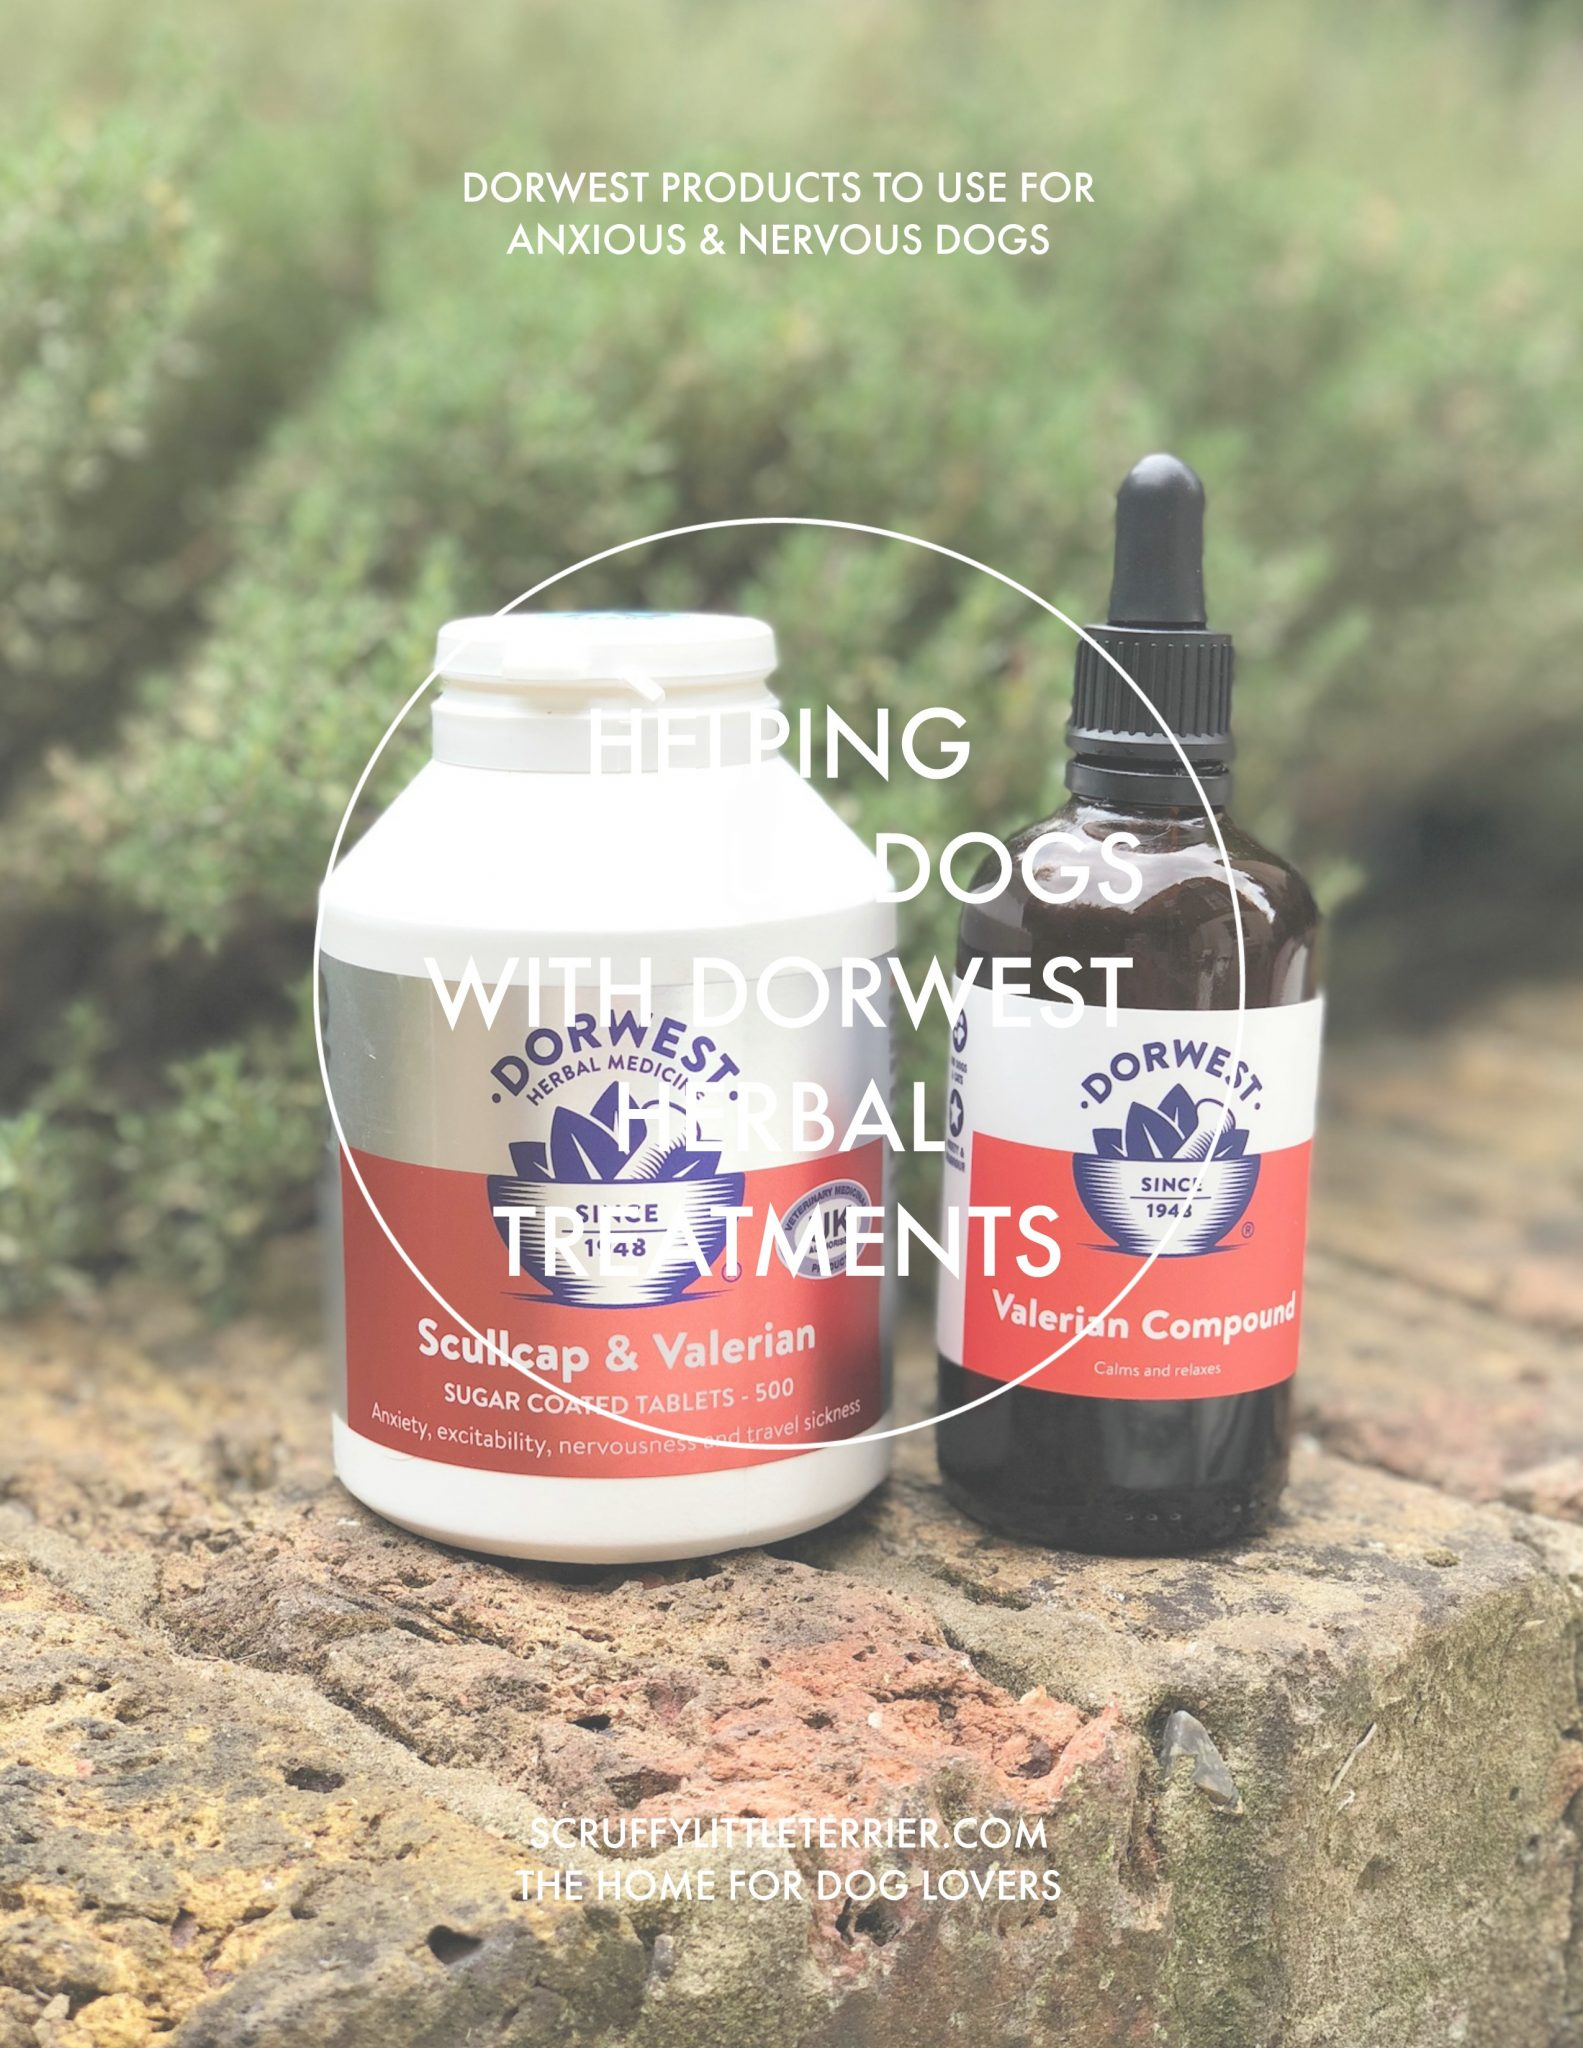 Helping Anxious Dogs With Dorwest Herbal Treatments {HelpingAnxiousDogswithDorwestHerbalTreatments} #Dorwest #Herbal #AnxiousDog #OrganicDog #NaturalDogProducts #DogProducts www.scruffylittleterrier.com